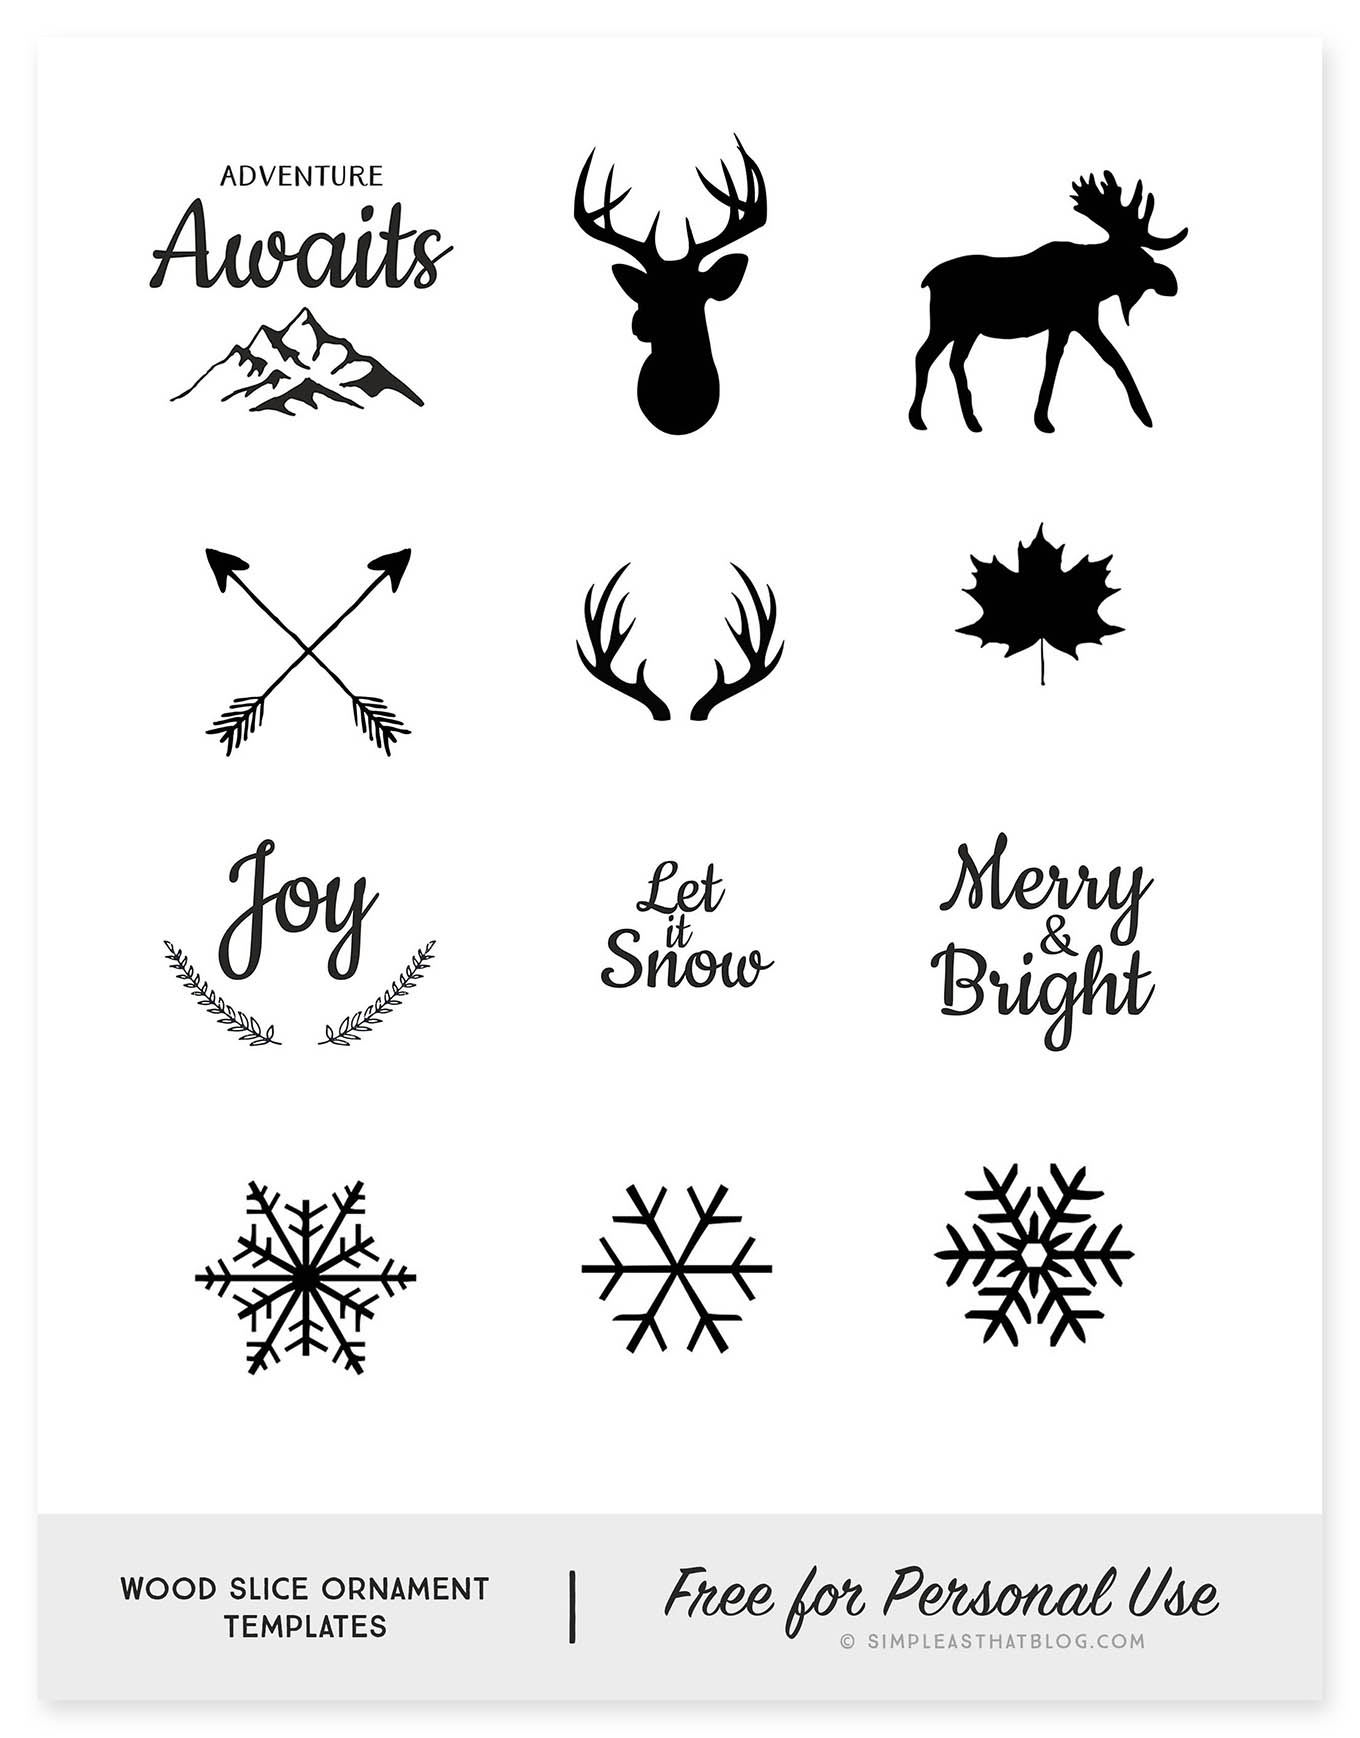 picture regarding Ornament Template Printable referred to as Wooden Minimize Ornament Template - Basic as That